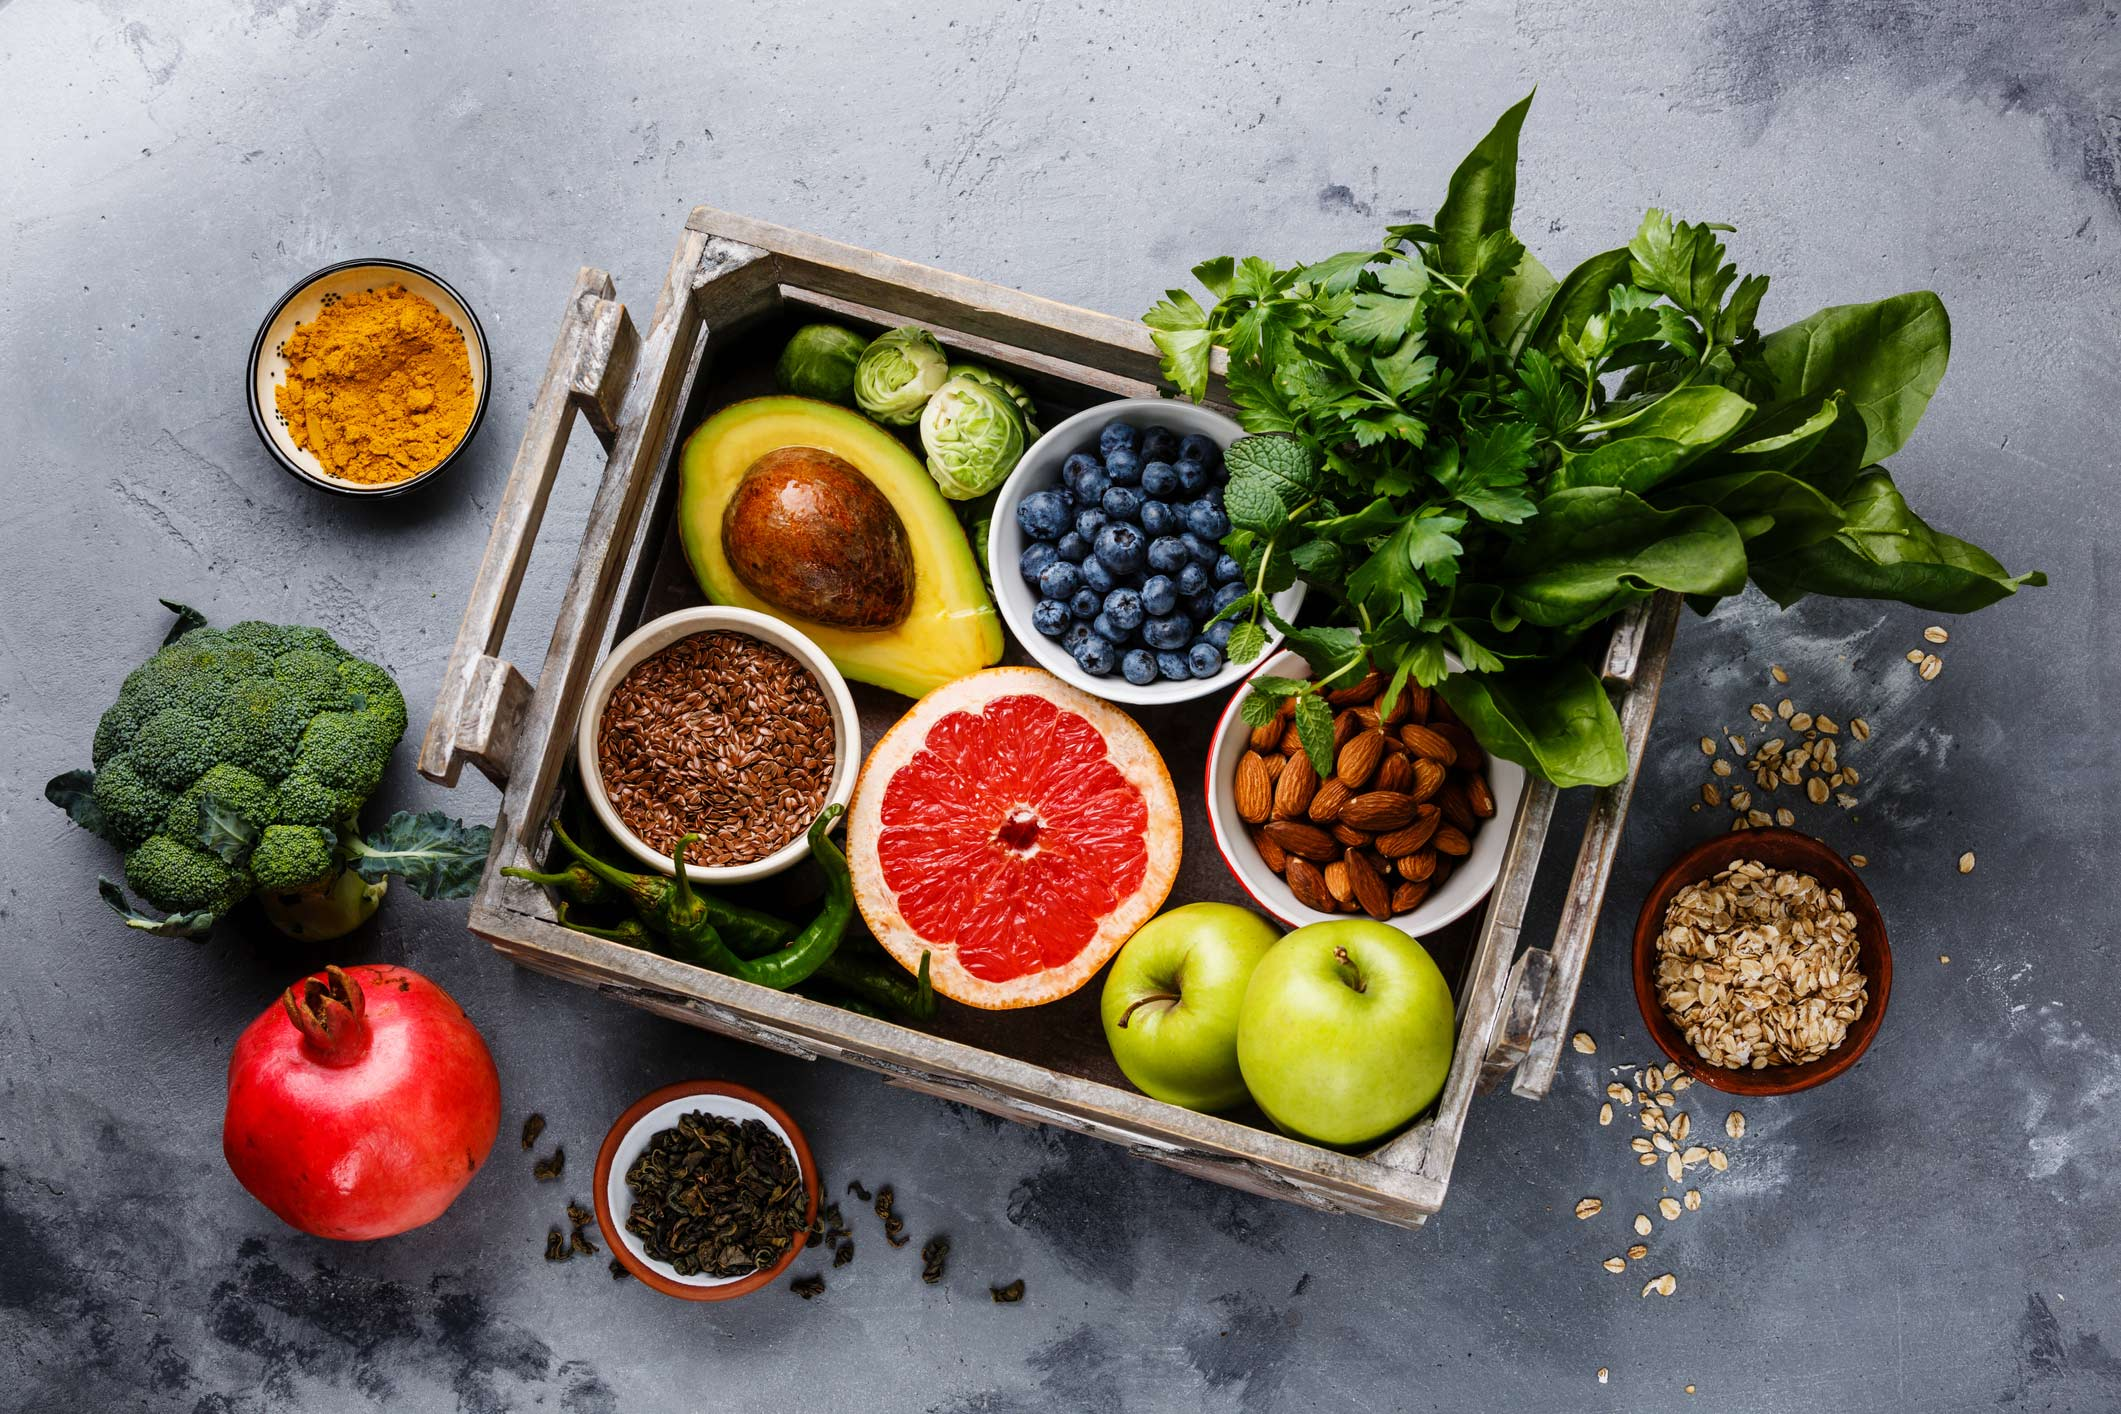 A spread of plant-based foods